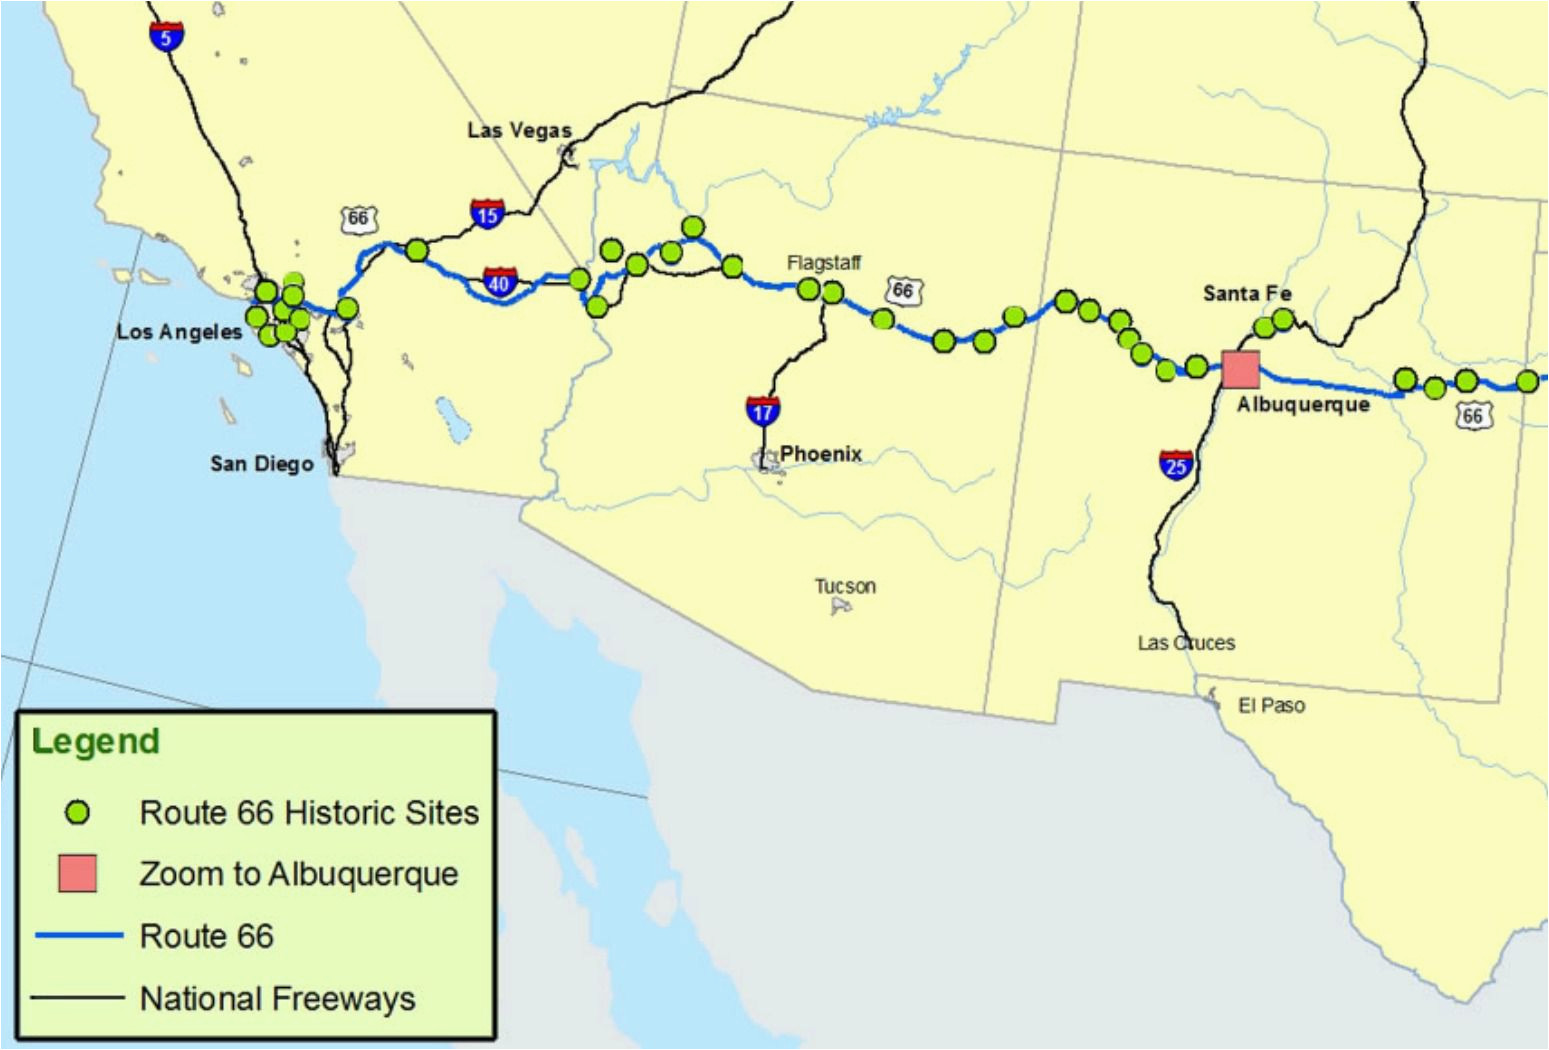 Map Of Southern California Freeway System.Map Of Southern California Freeway System Maps Of Route 66